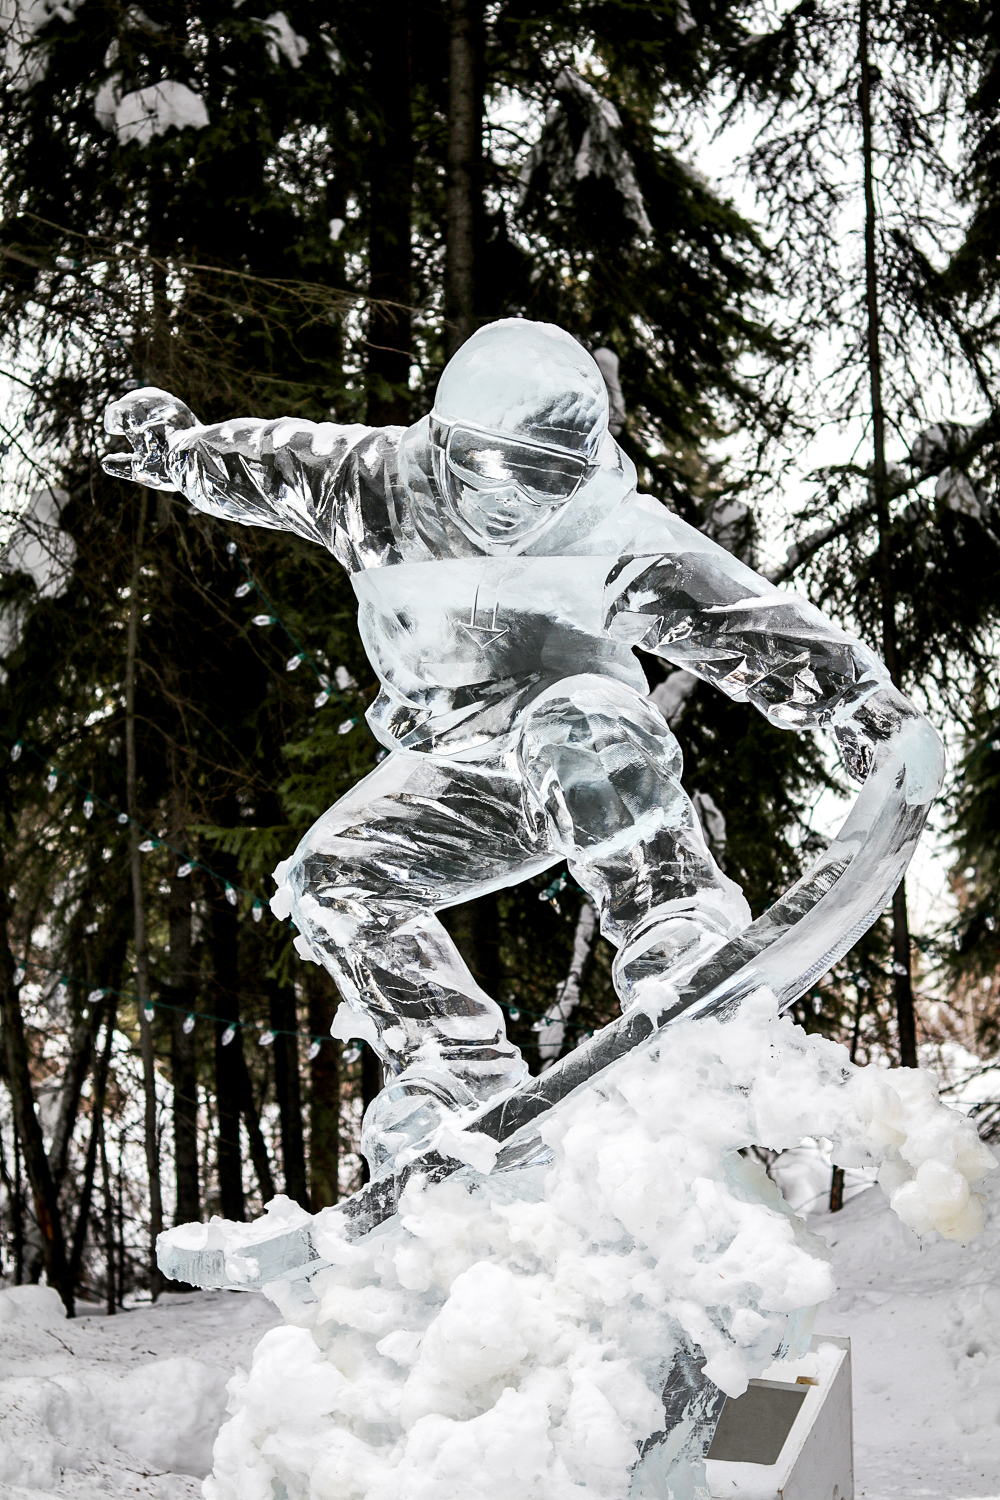 Ice Sculpture World Championships Fairbanks | The Ultimate Fairbanks Travel Guide | Everything you need to know about visiting Fairbanks, Alaska - where to stay, what to do, where to eat | Catherine Chicotka